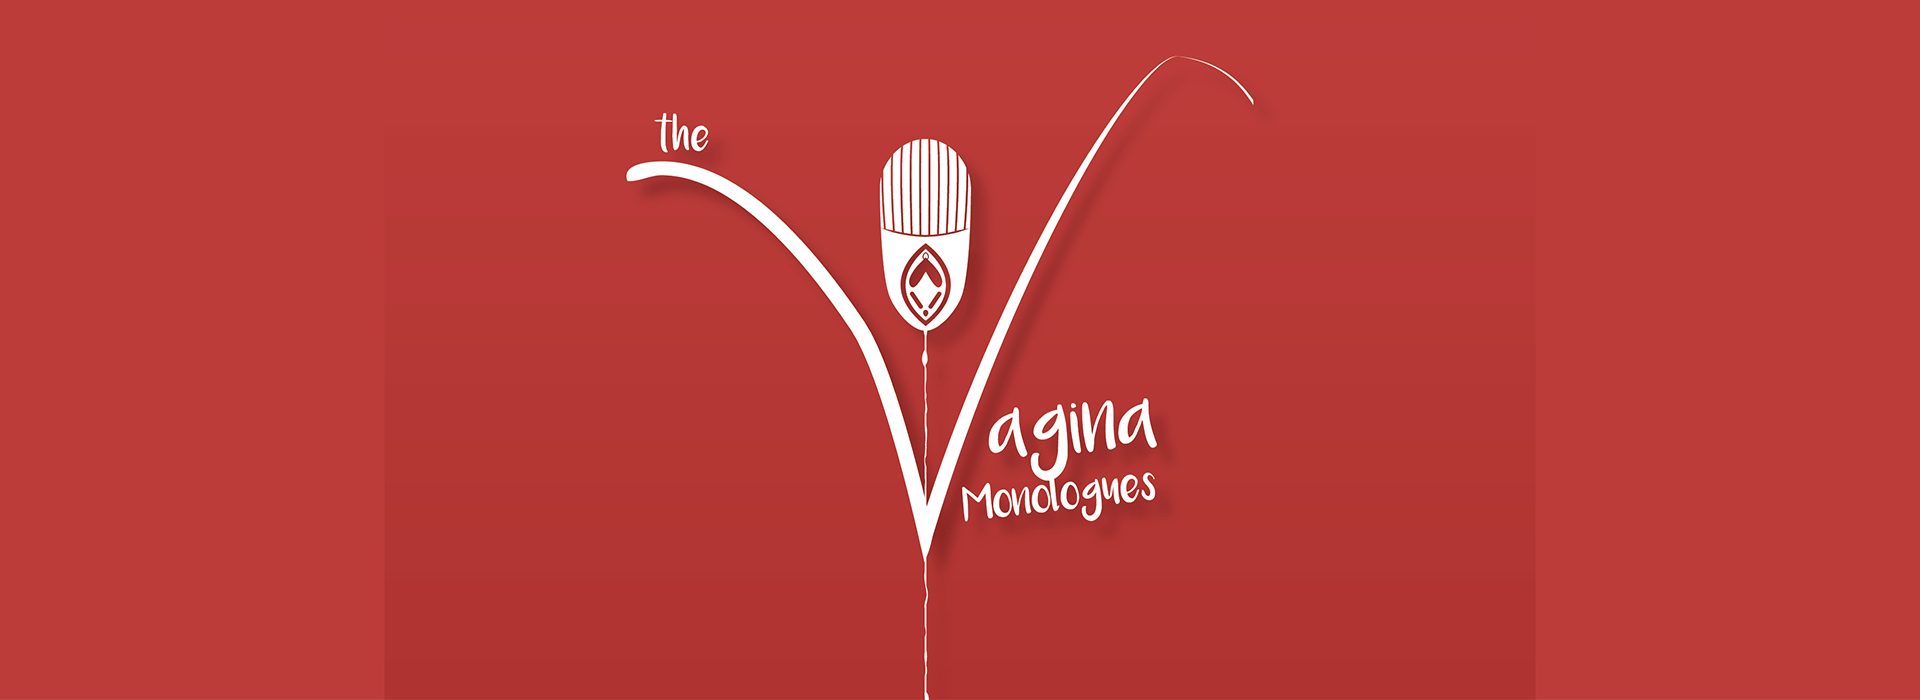 'The Vagina Monologues' returns to Cal State San Bernardino